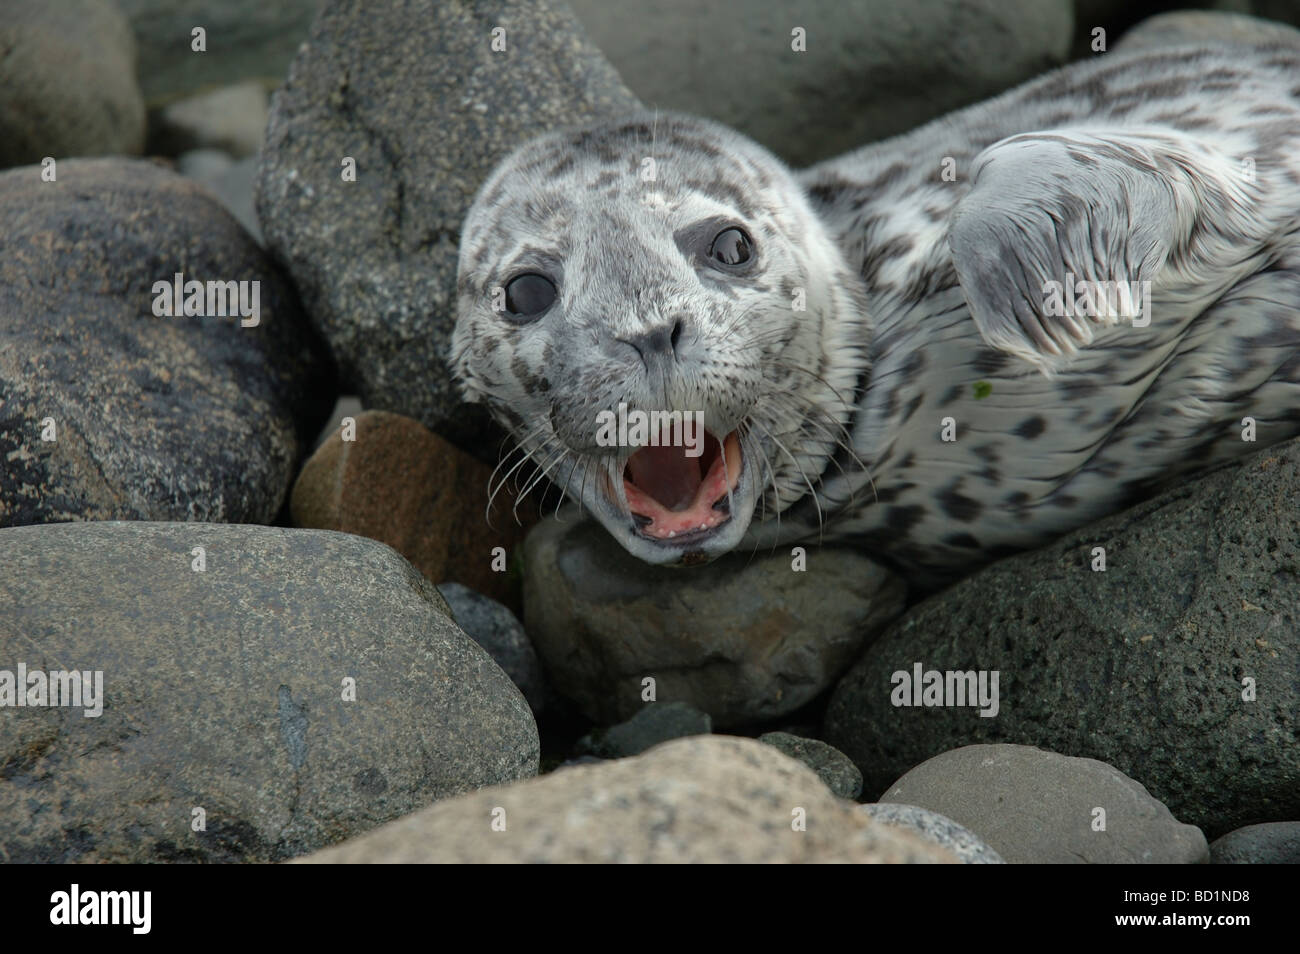 A baby seal stranded on the shore screaming with his mouth and eyes wide open. - Stock Image